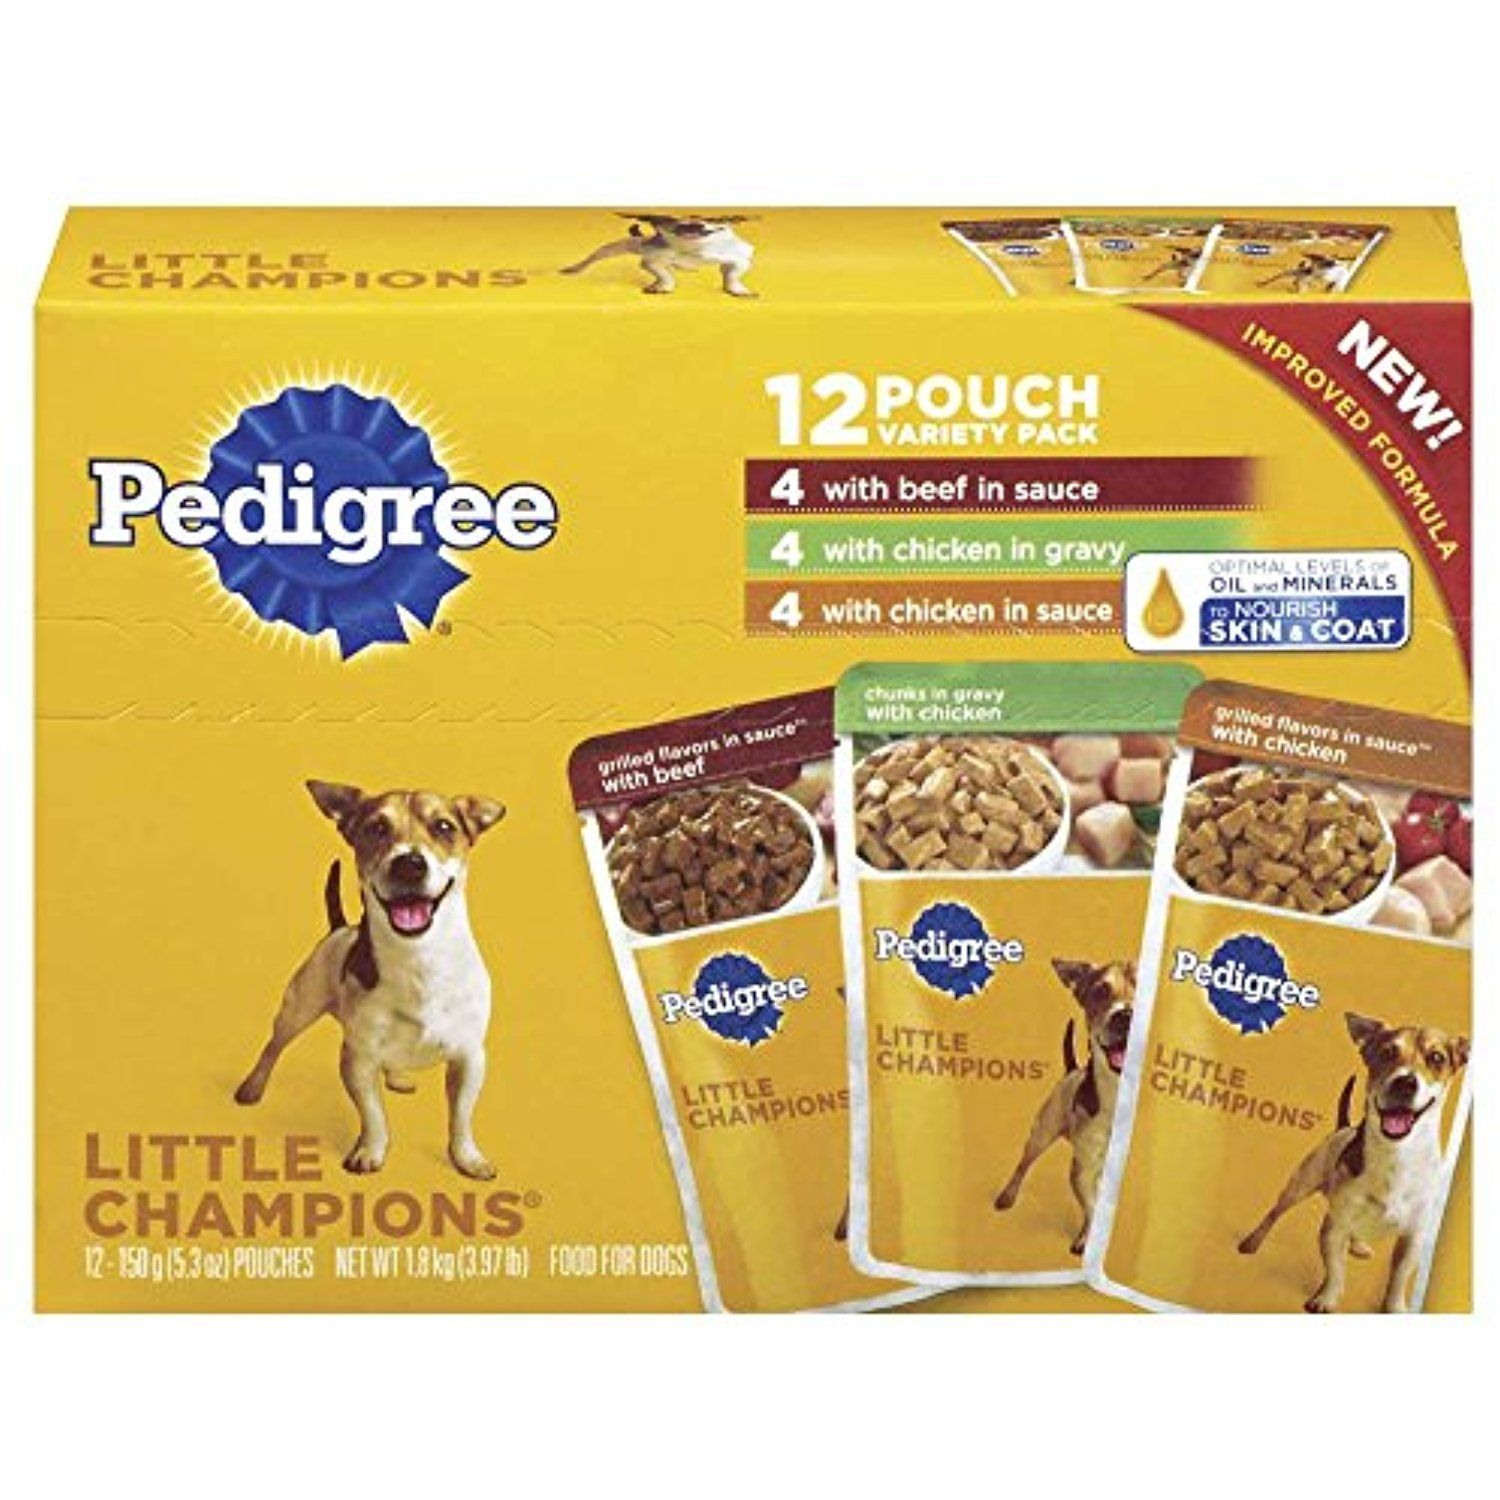 Pedigree Little Champions 12 Pouch Variety Pack Dog Food With 4